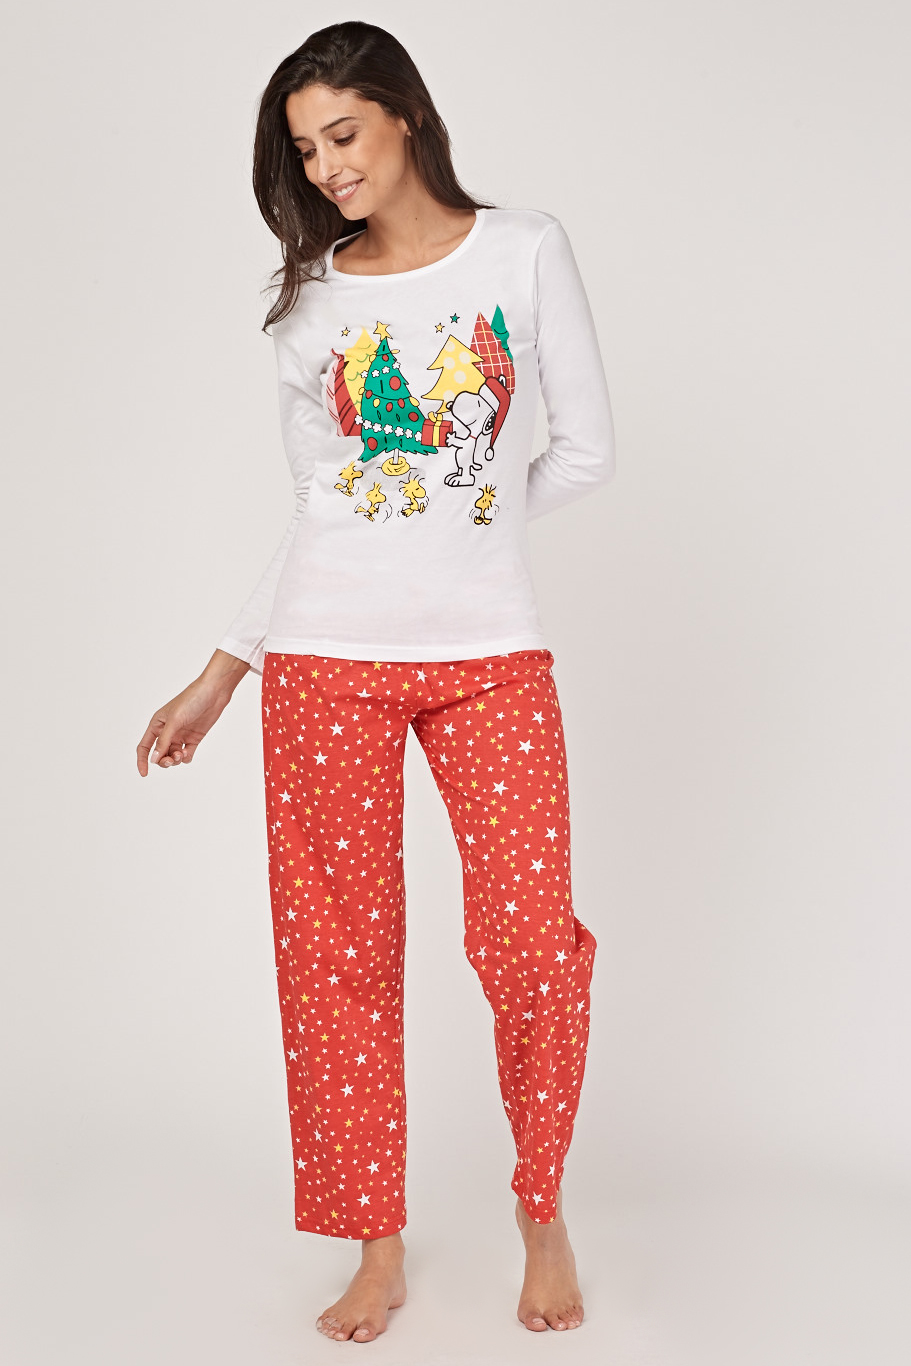 snoopy christmas print pyjama set redmulti just 5 - Snoopy Christmas Pajamas